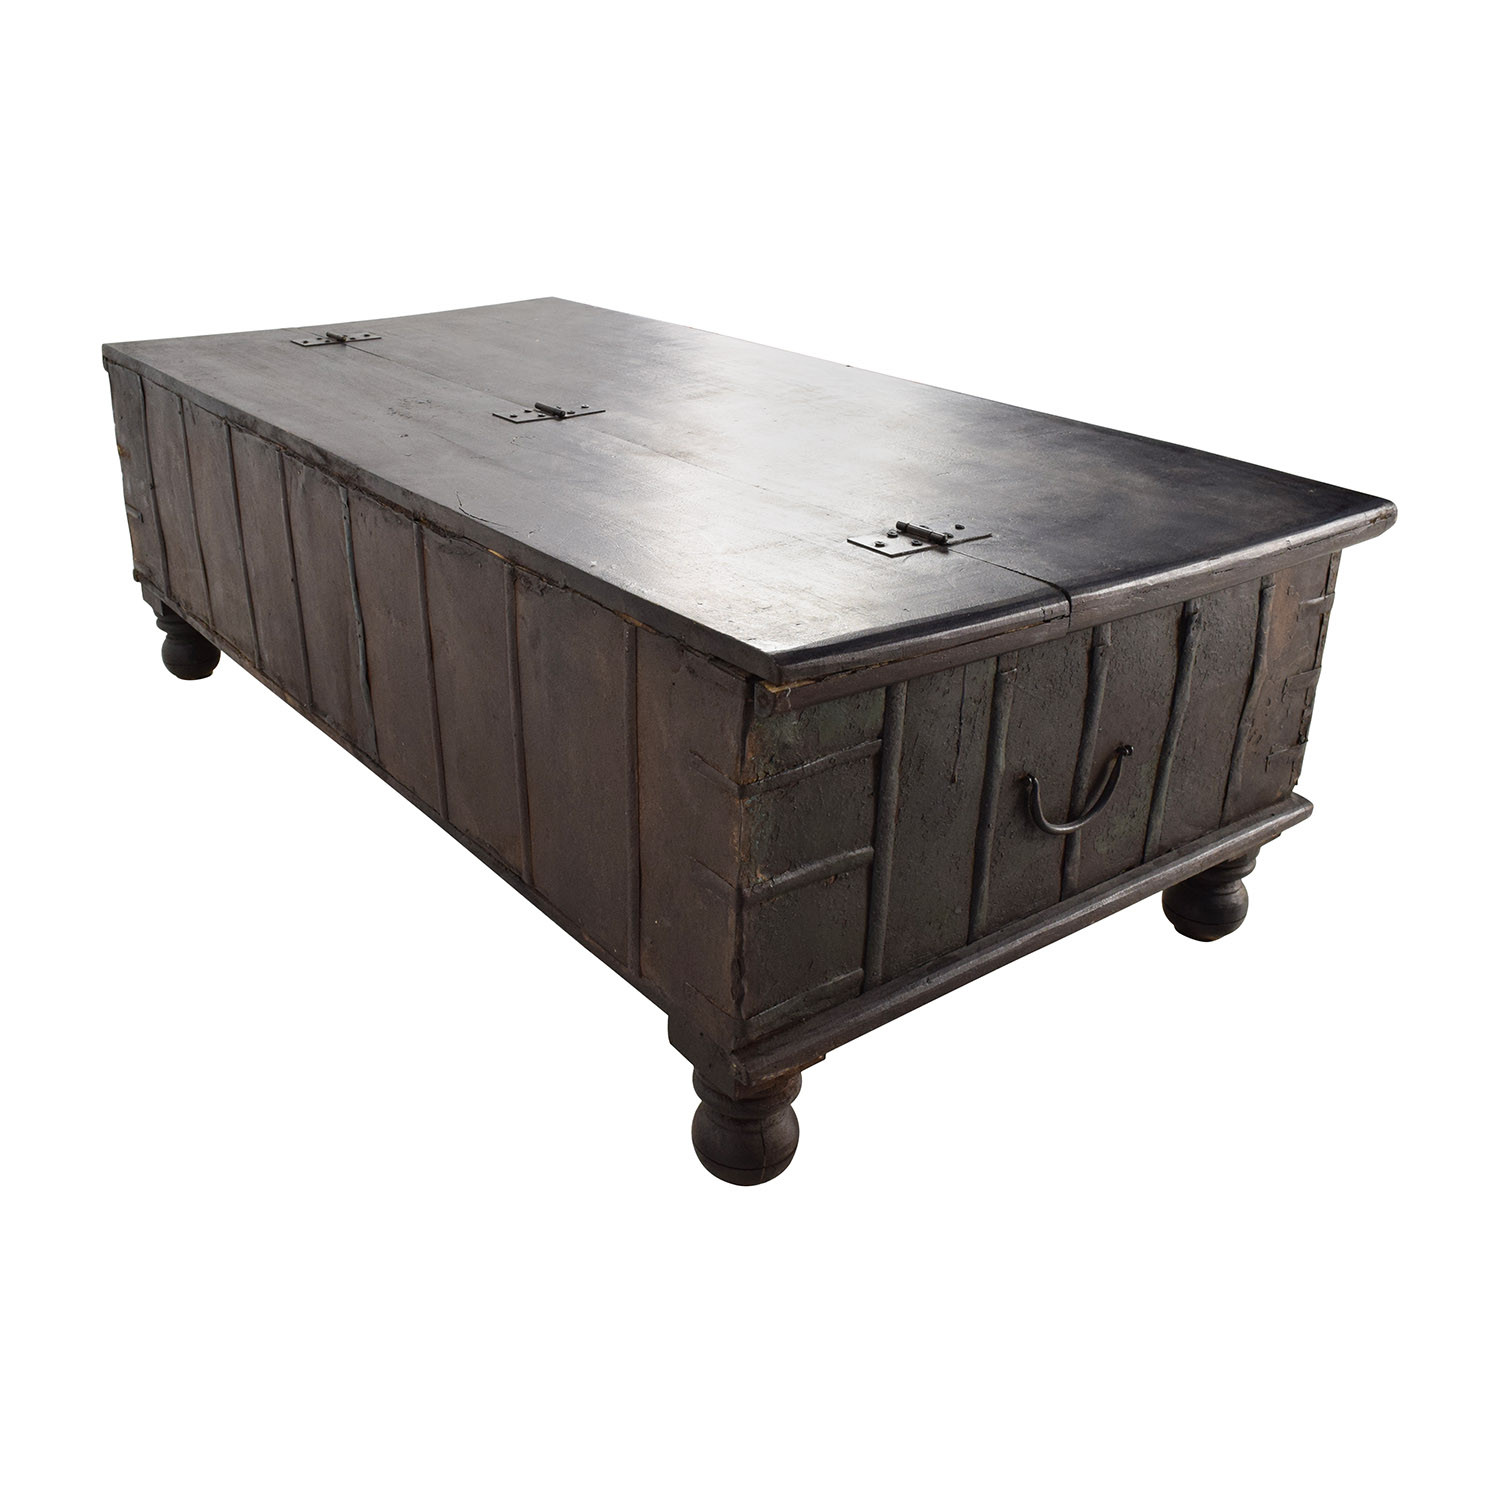 Nadeau Nadeau Distressed Coffee Table with Storage